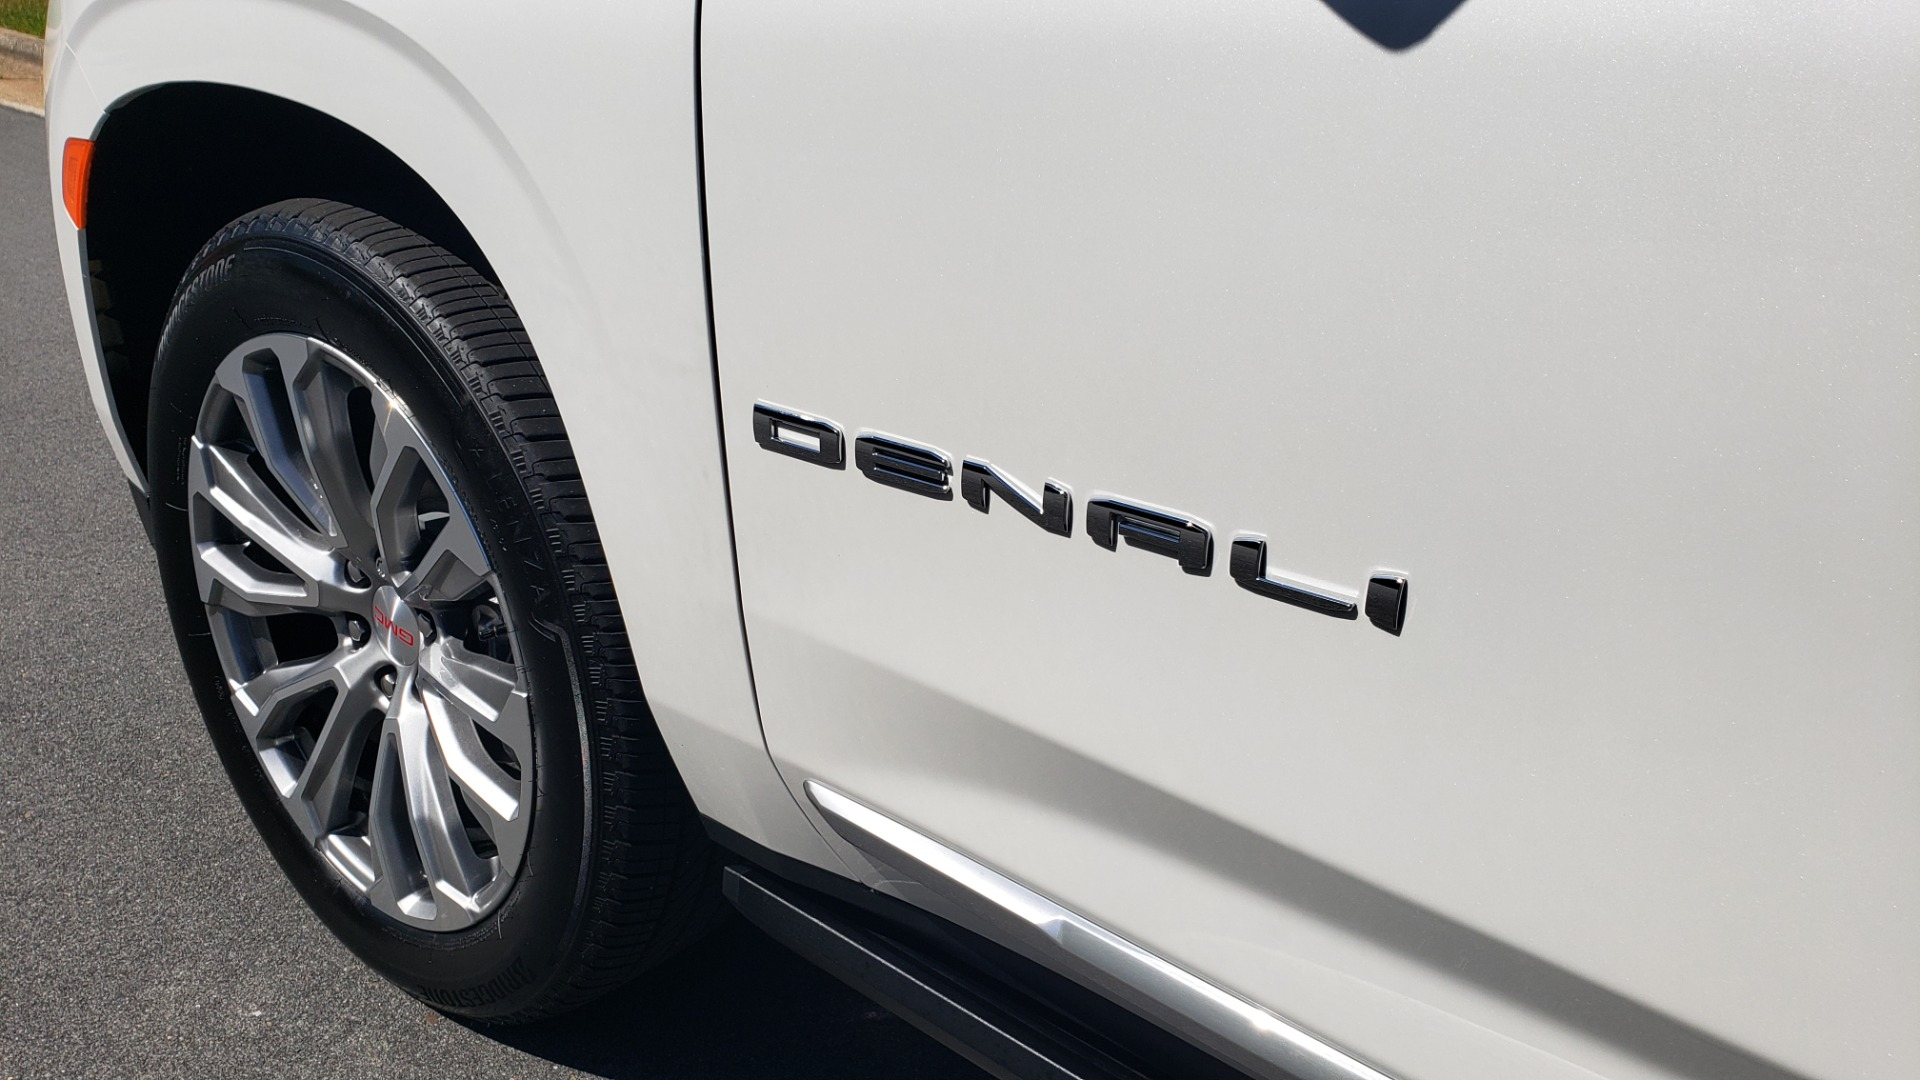 Used 2021 GMC YUKON DENALI PREM / 4WD / NAV / TECH / TRAILER / SECURITY / SUNROOF for sale Sold at Formula Imports in Charlotte NC 28227 7